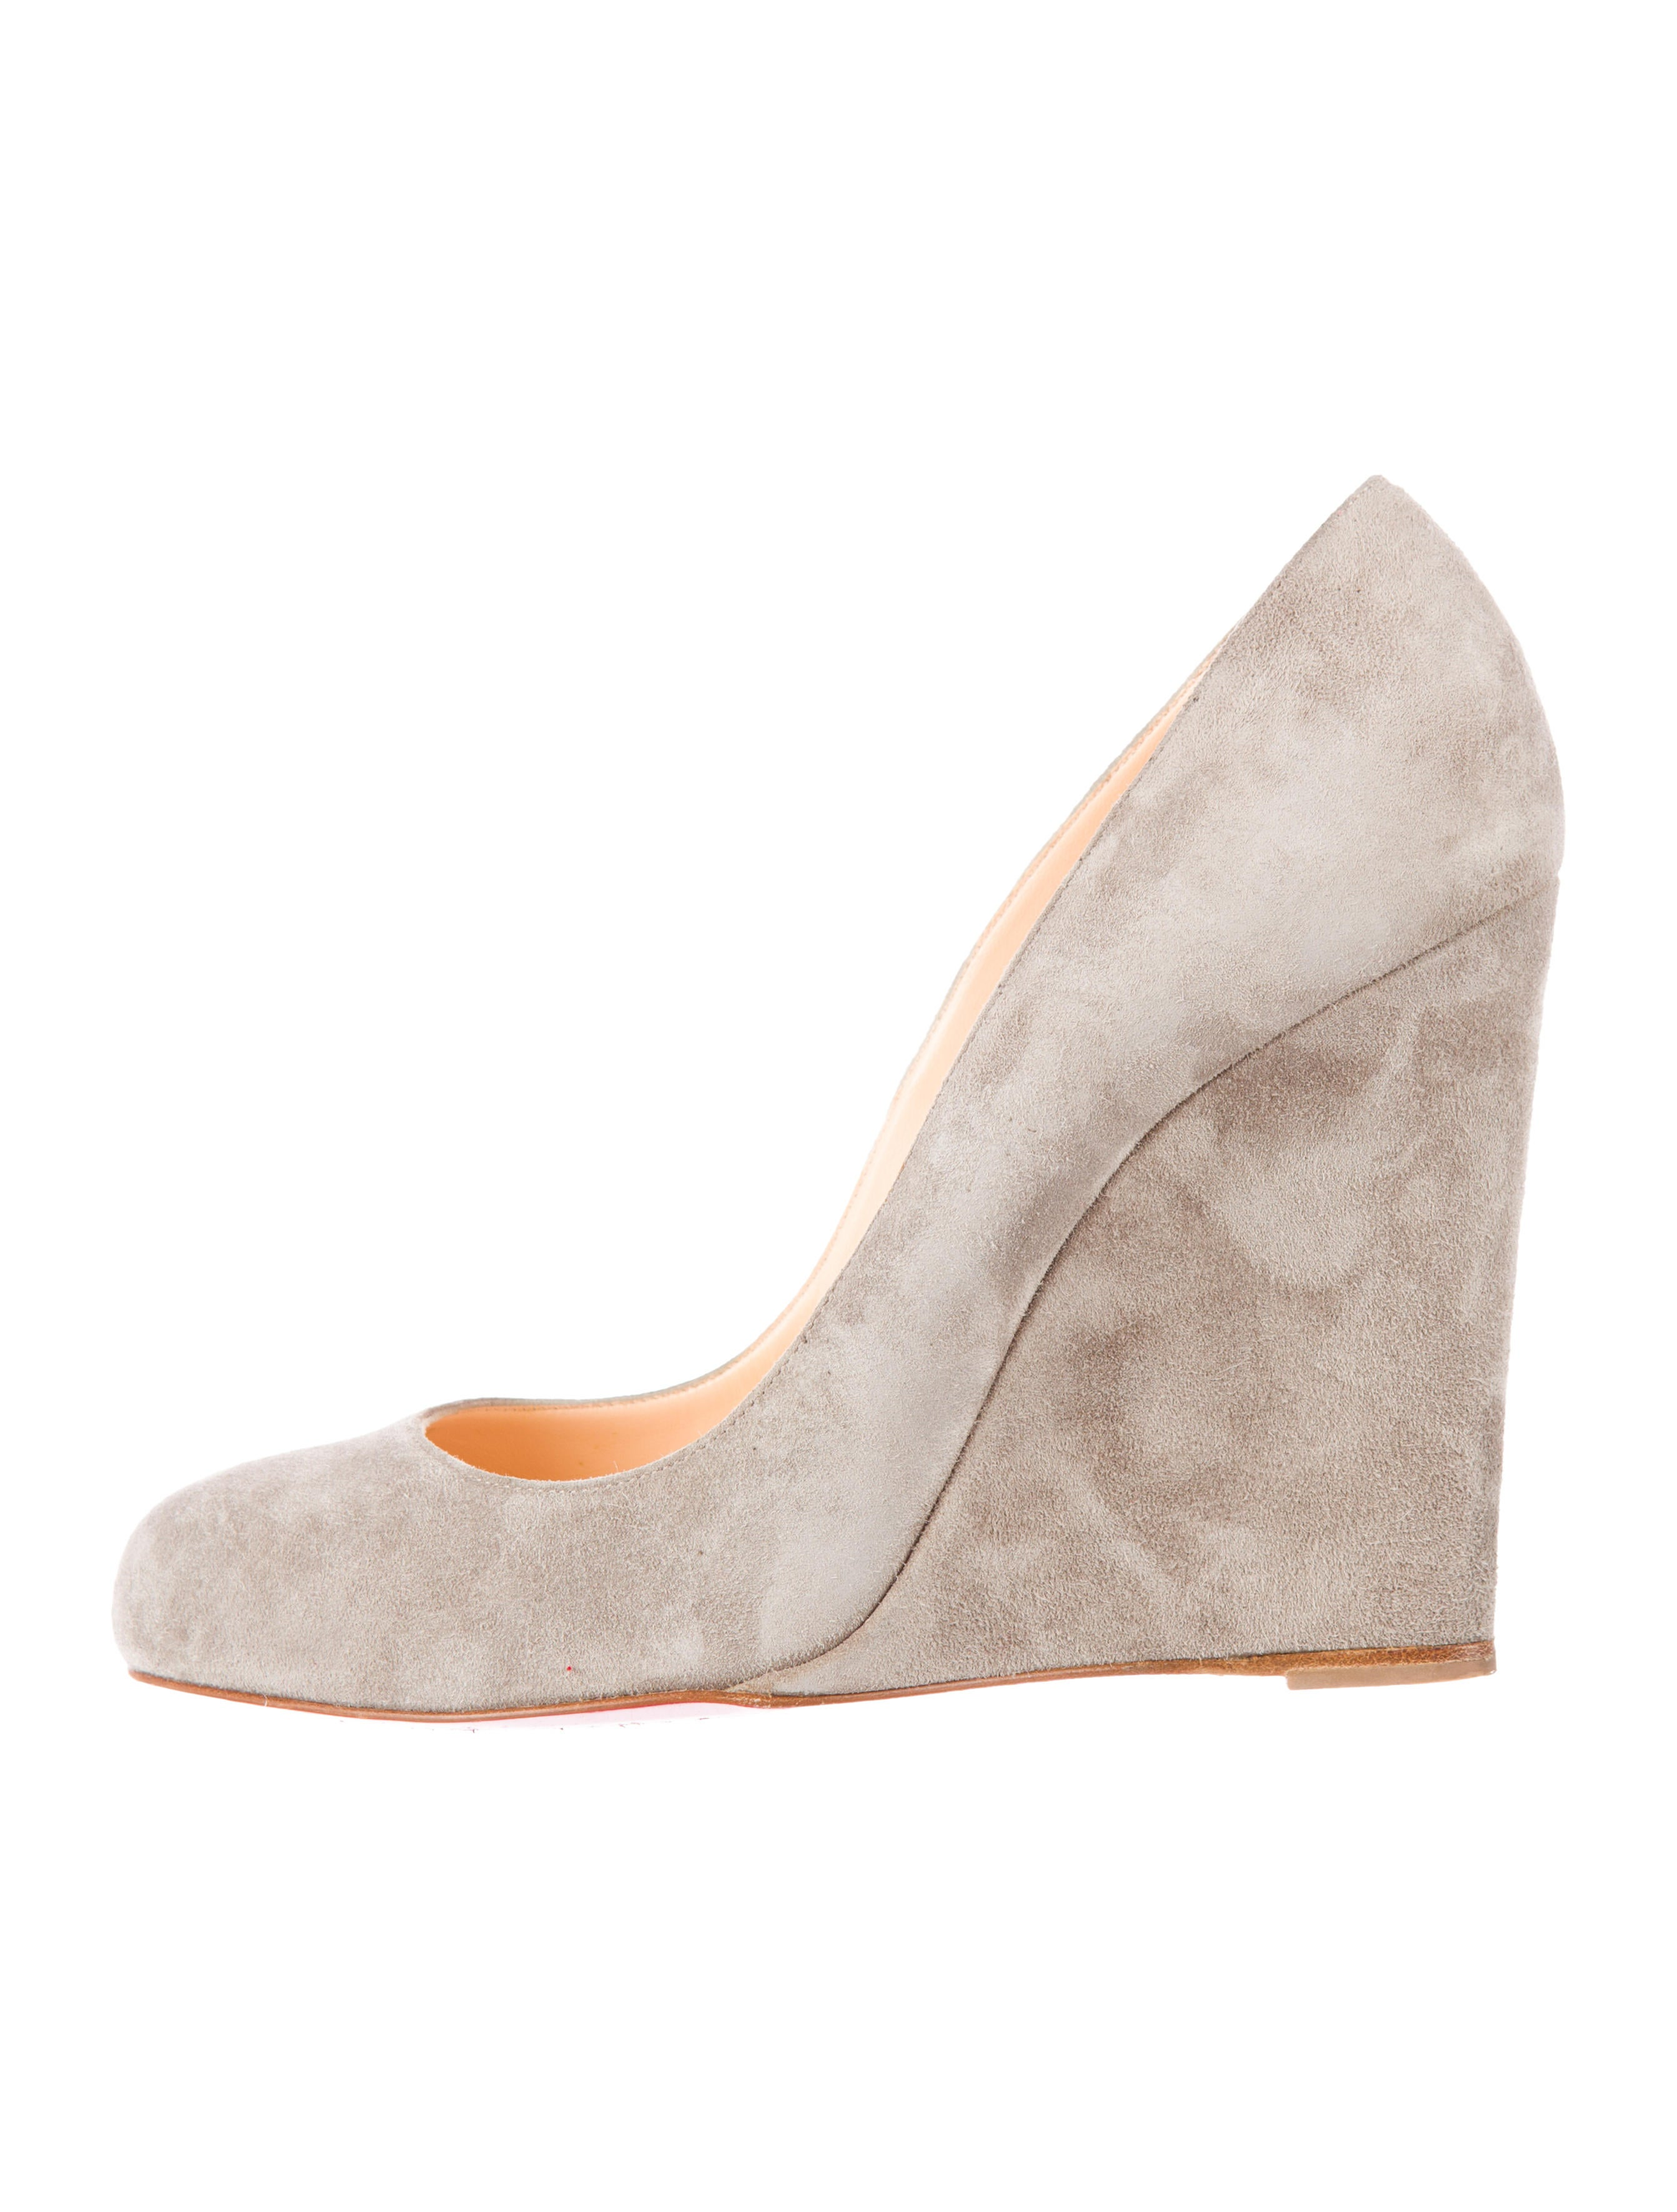 usa replica shoes - Artesur ? christian louboutin round-toe wedges Grey suede covered ...